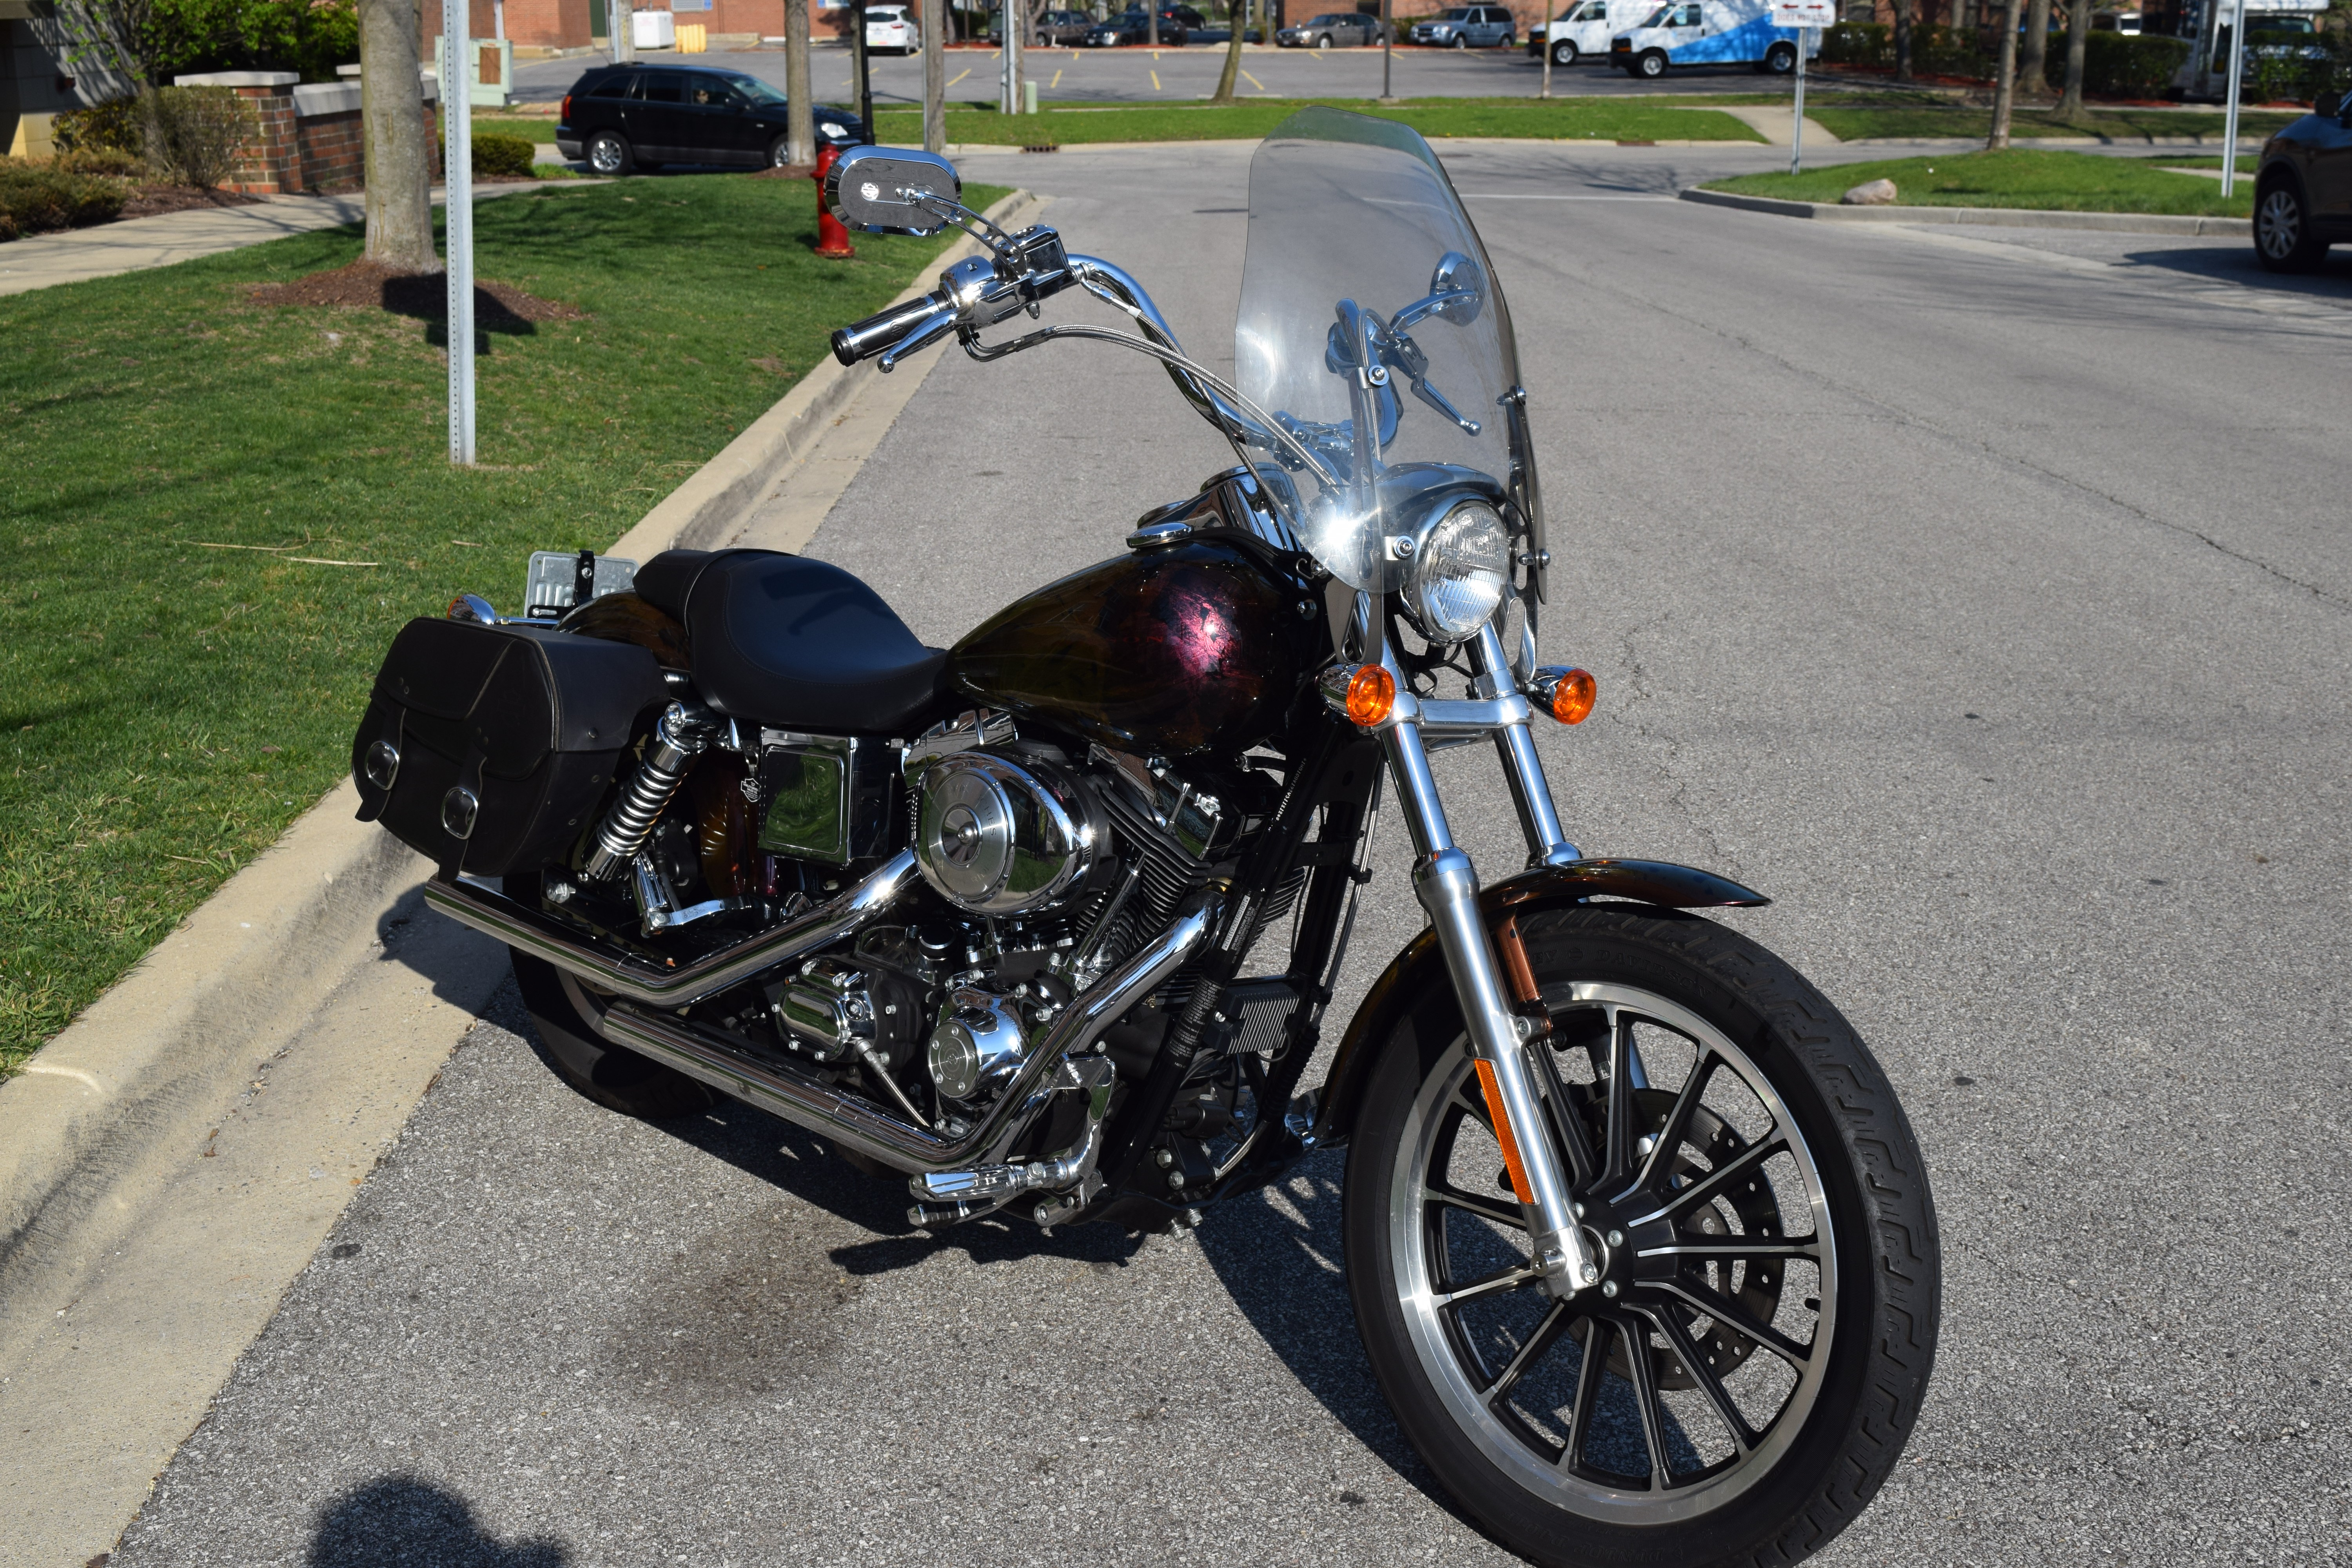 all new used harley davidson dyna low rider for sale 542 bikes page 1 chopperexchange. Black Bedroom Furniture Sets. Home Design Ideas